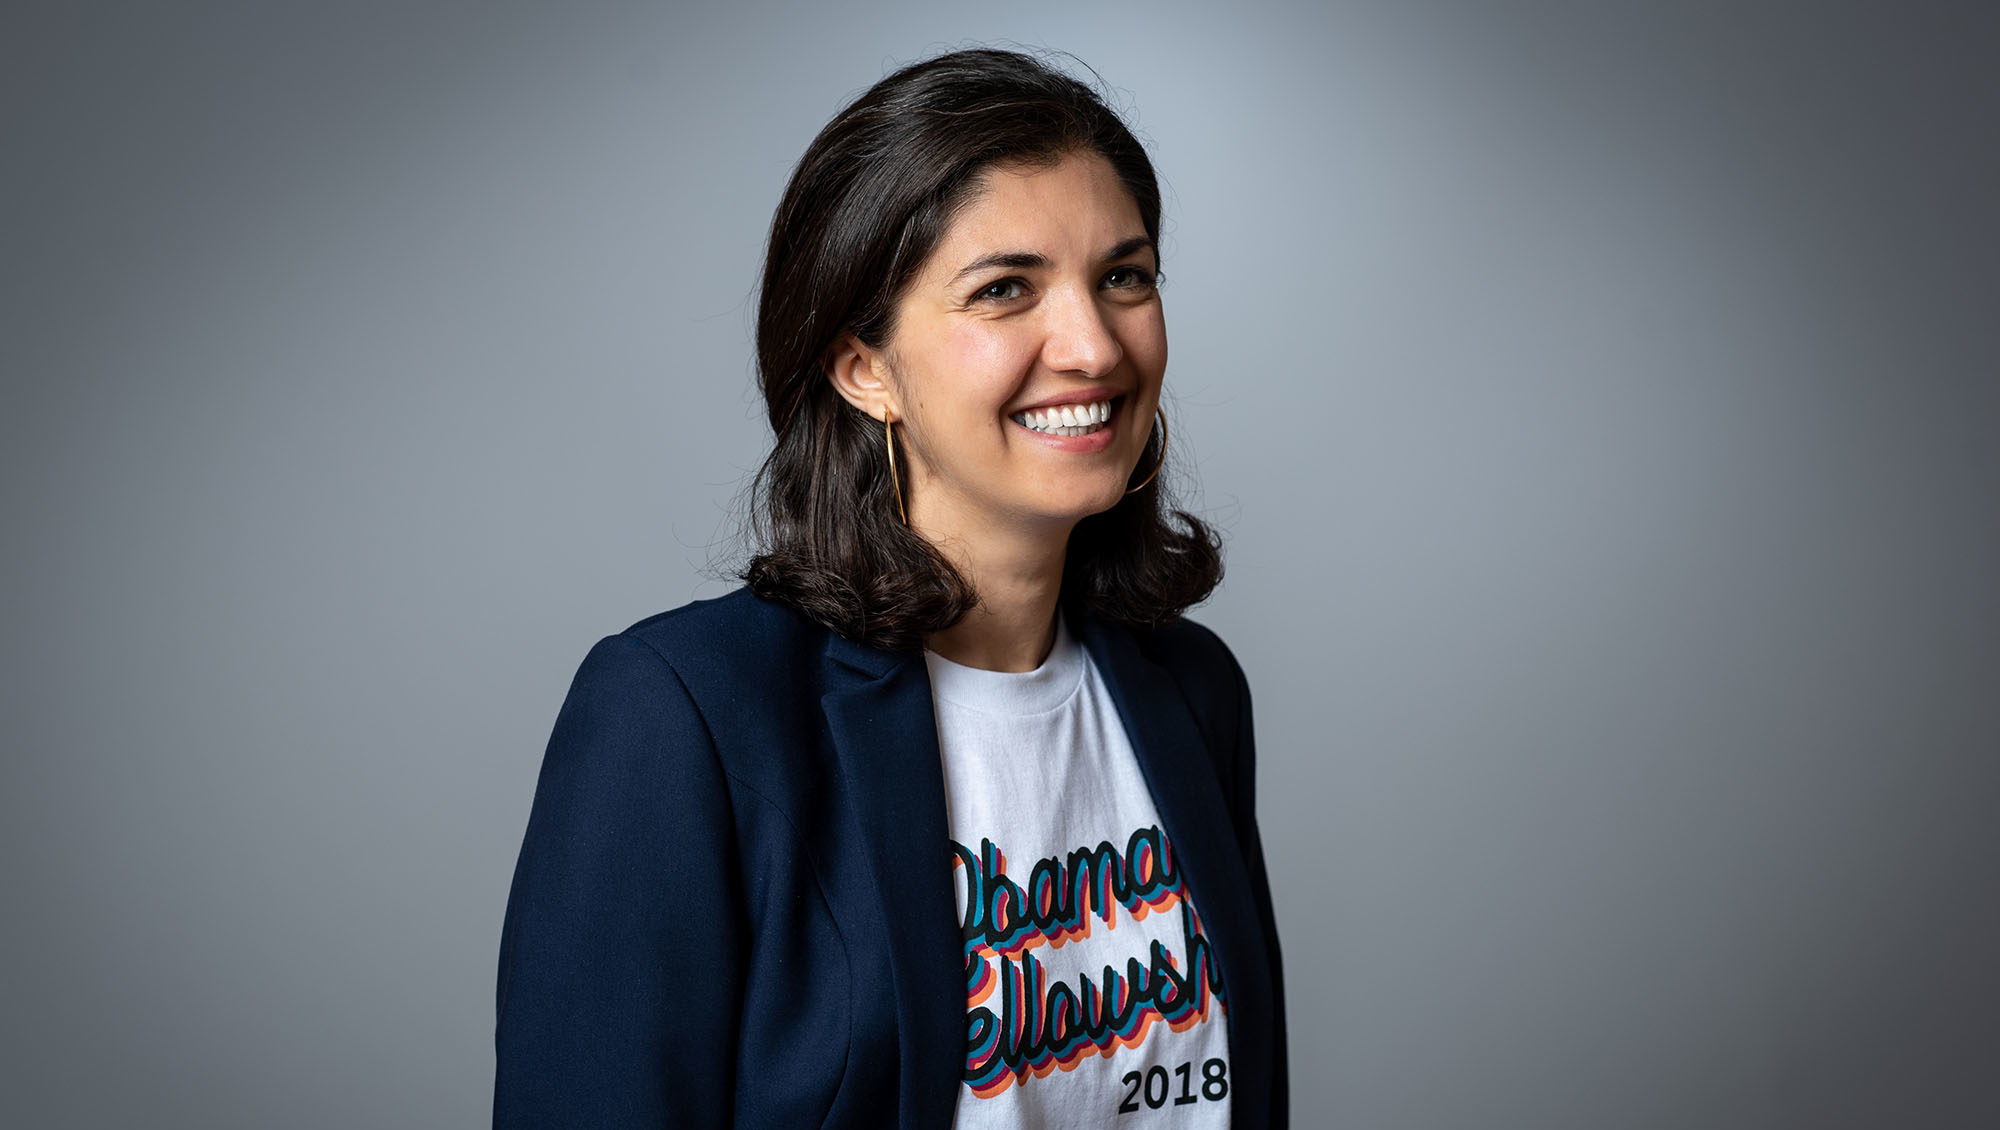 Zarlasht smiles off-camera wearing an Obama Fellowship t-shirt and blazer.